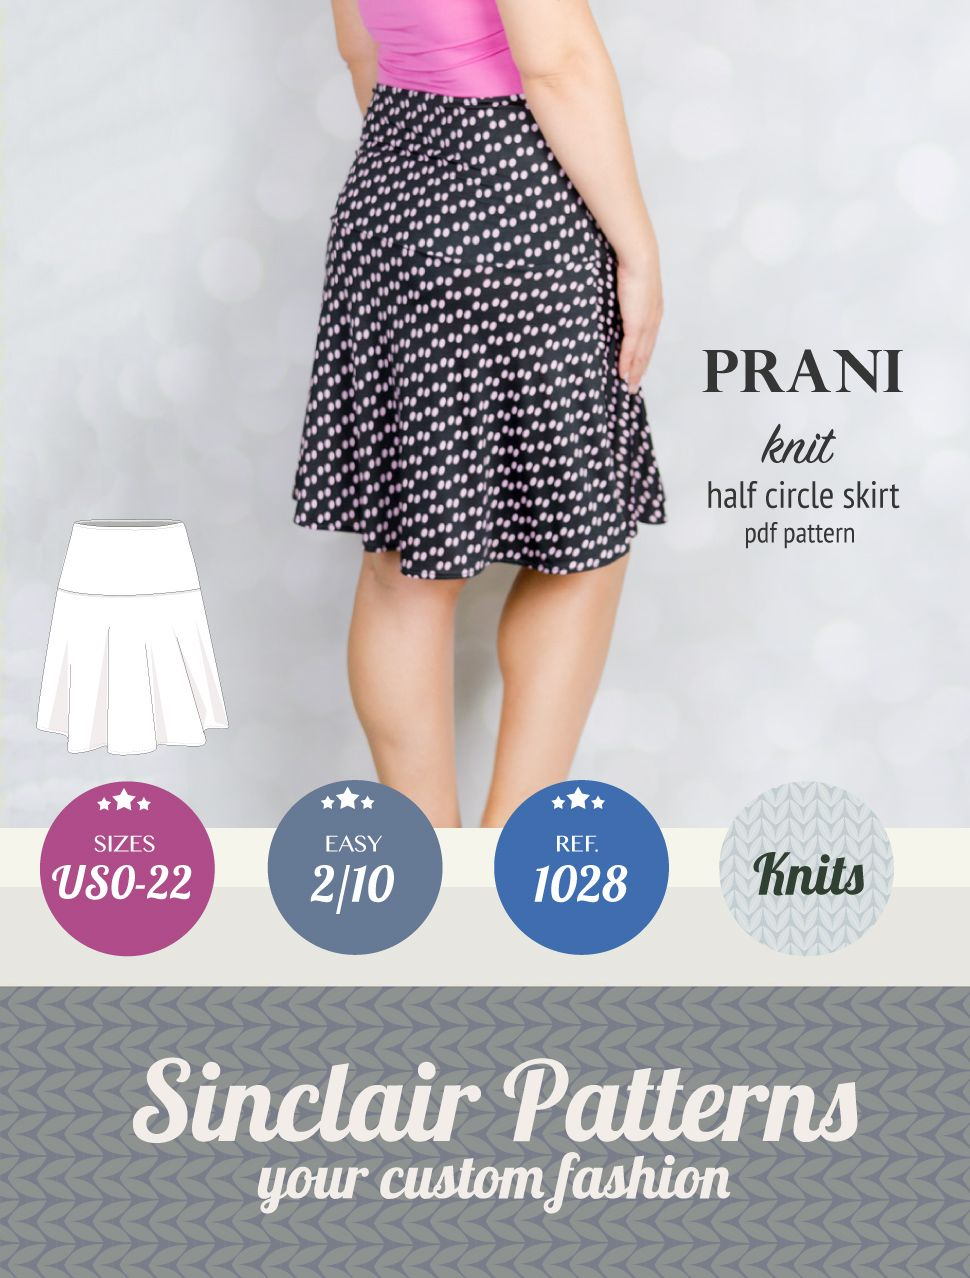 Pdf sewing pattern half circle knit skirt for women easy pdf pdf sewing pattern half circle knit skirt for women easy pdf sewing pattern with step by bankloansurffo Image collections